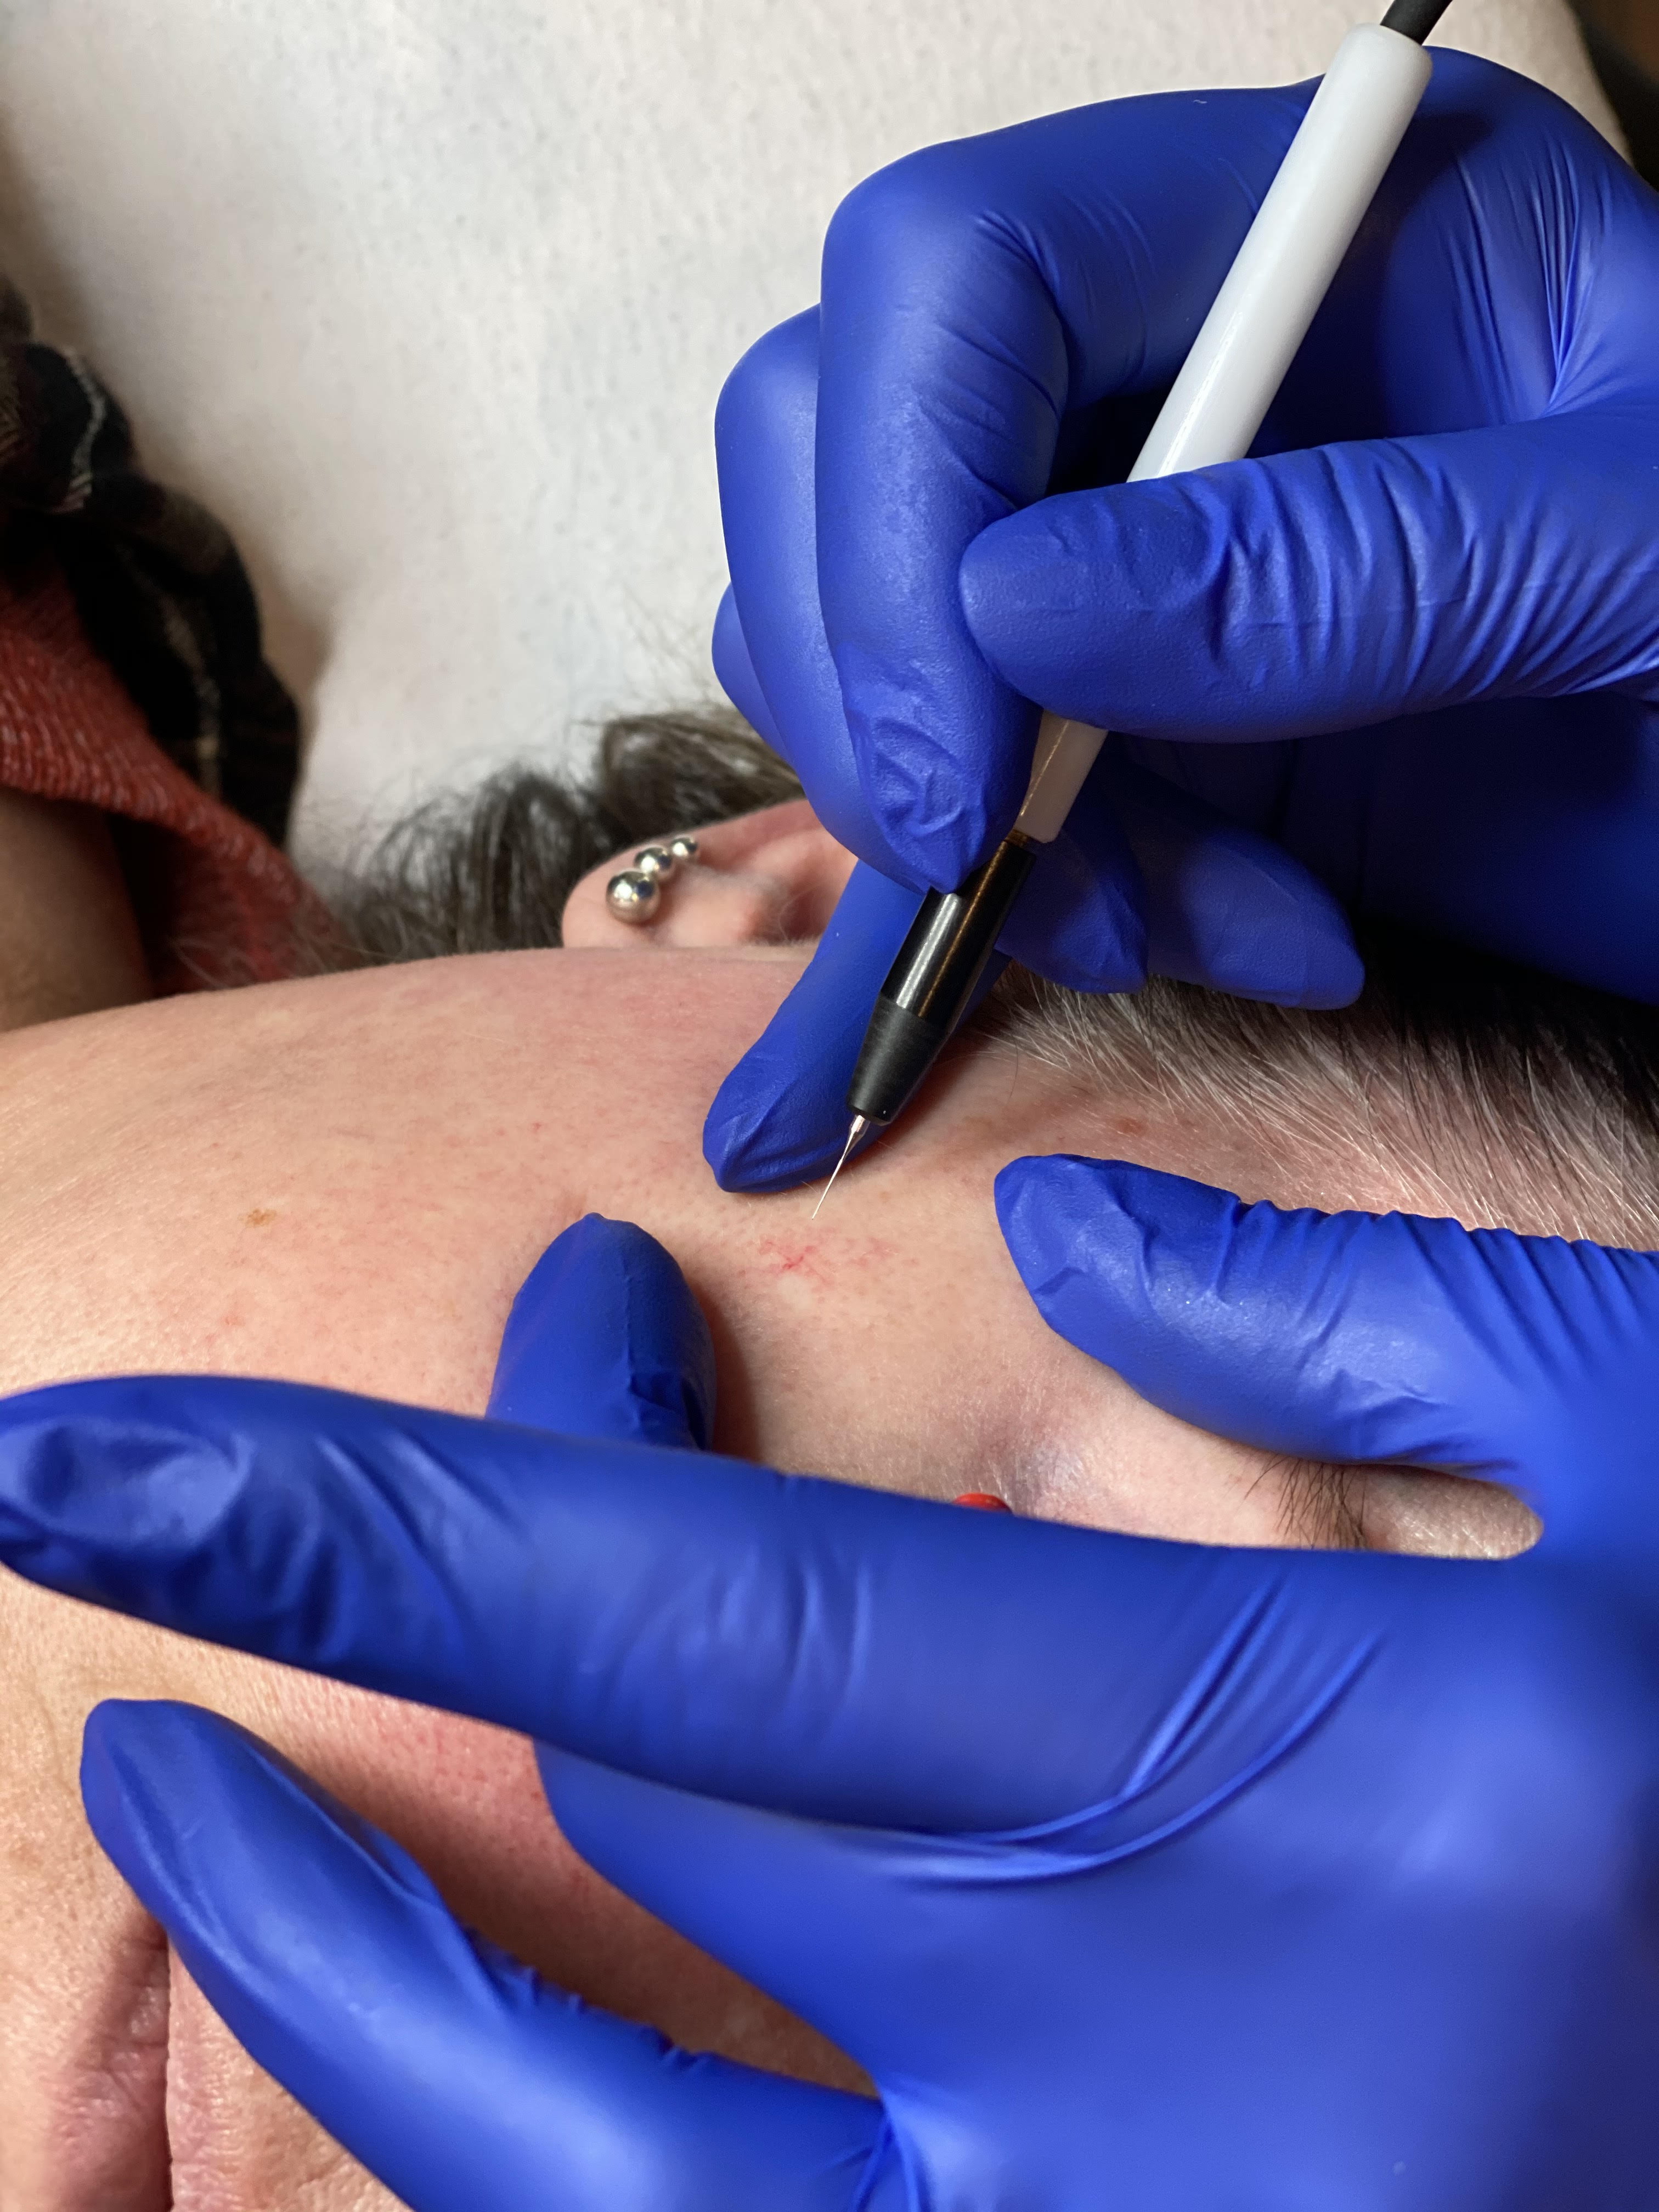 skin care specialist does work on a patient